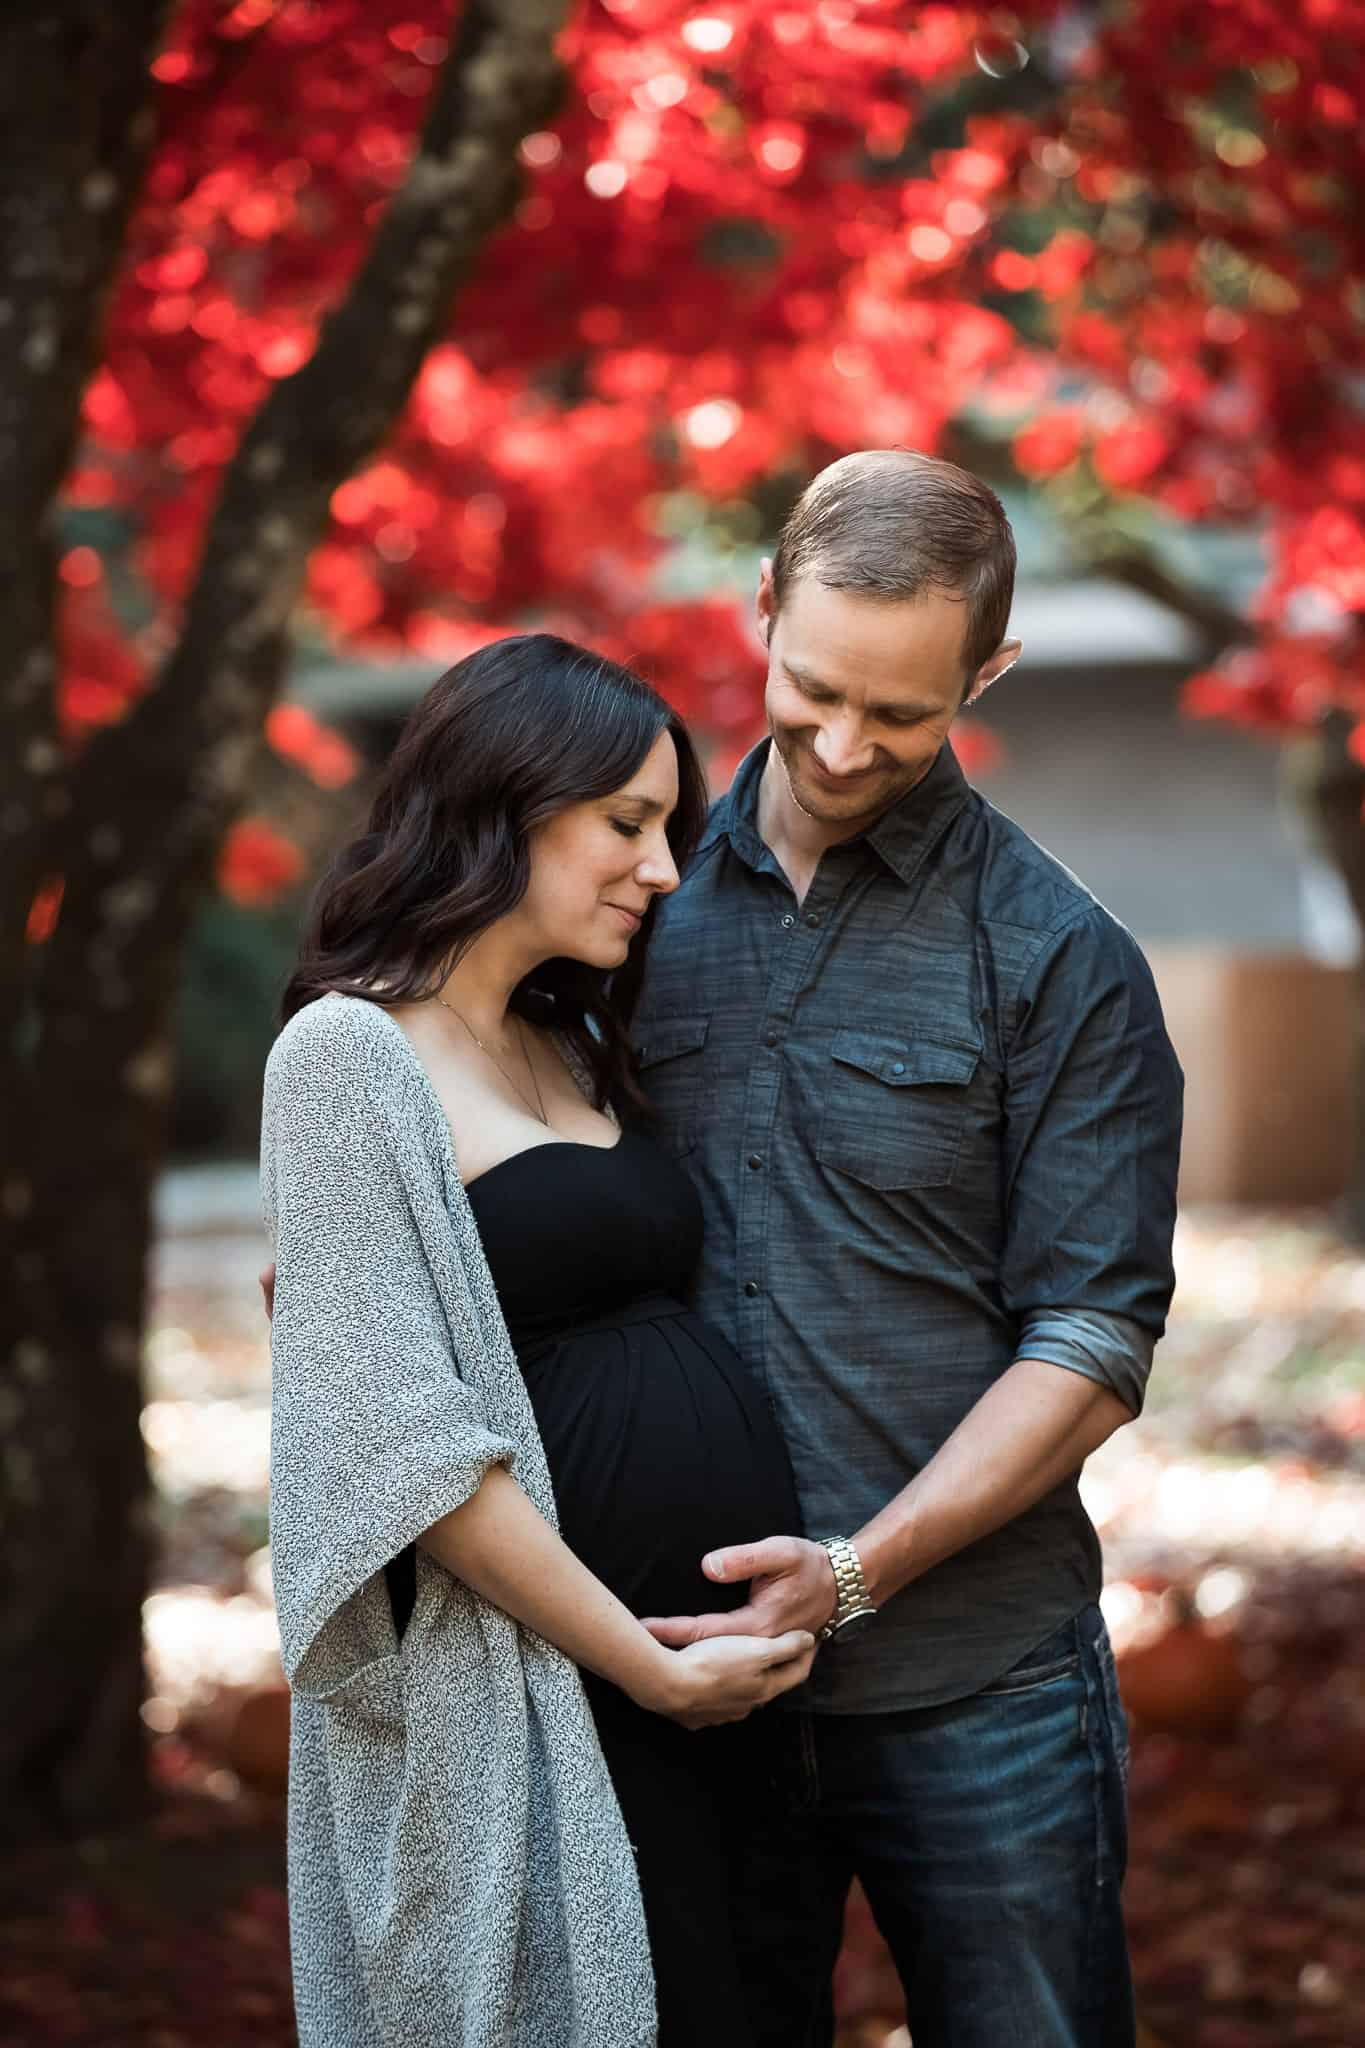 couple holding pregnant belly under red leafed trees